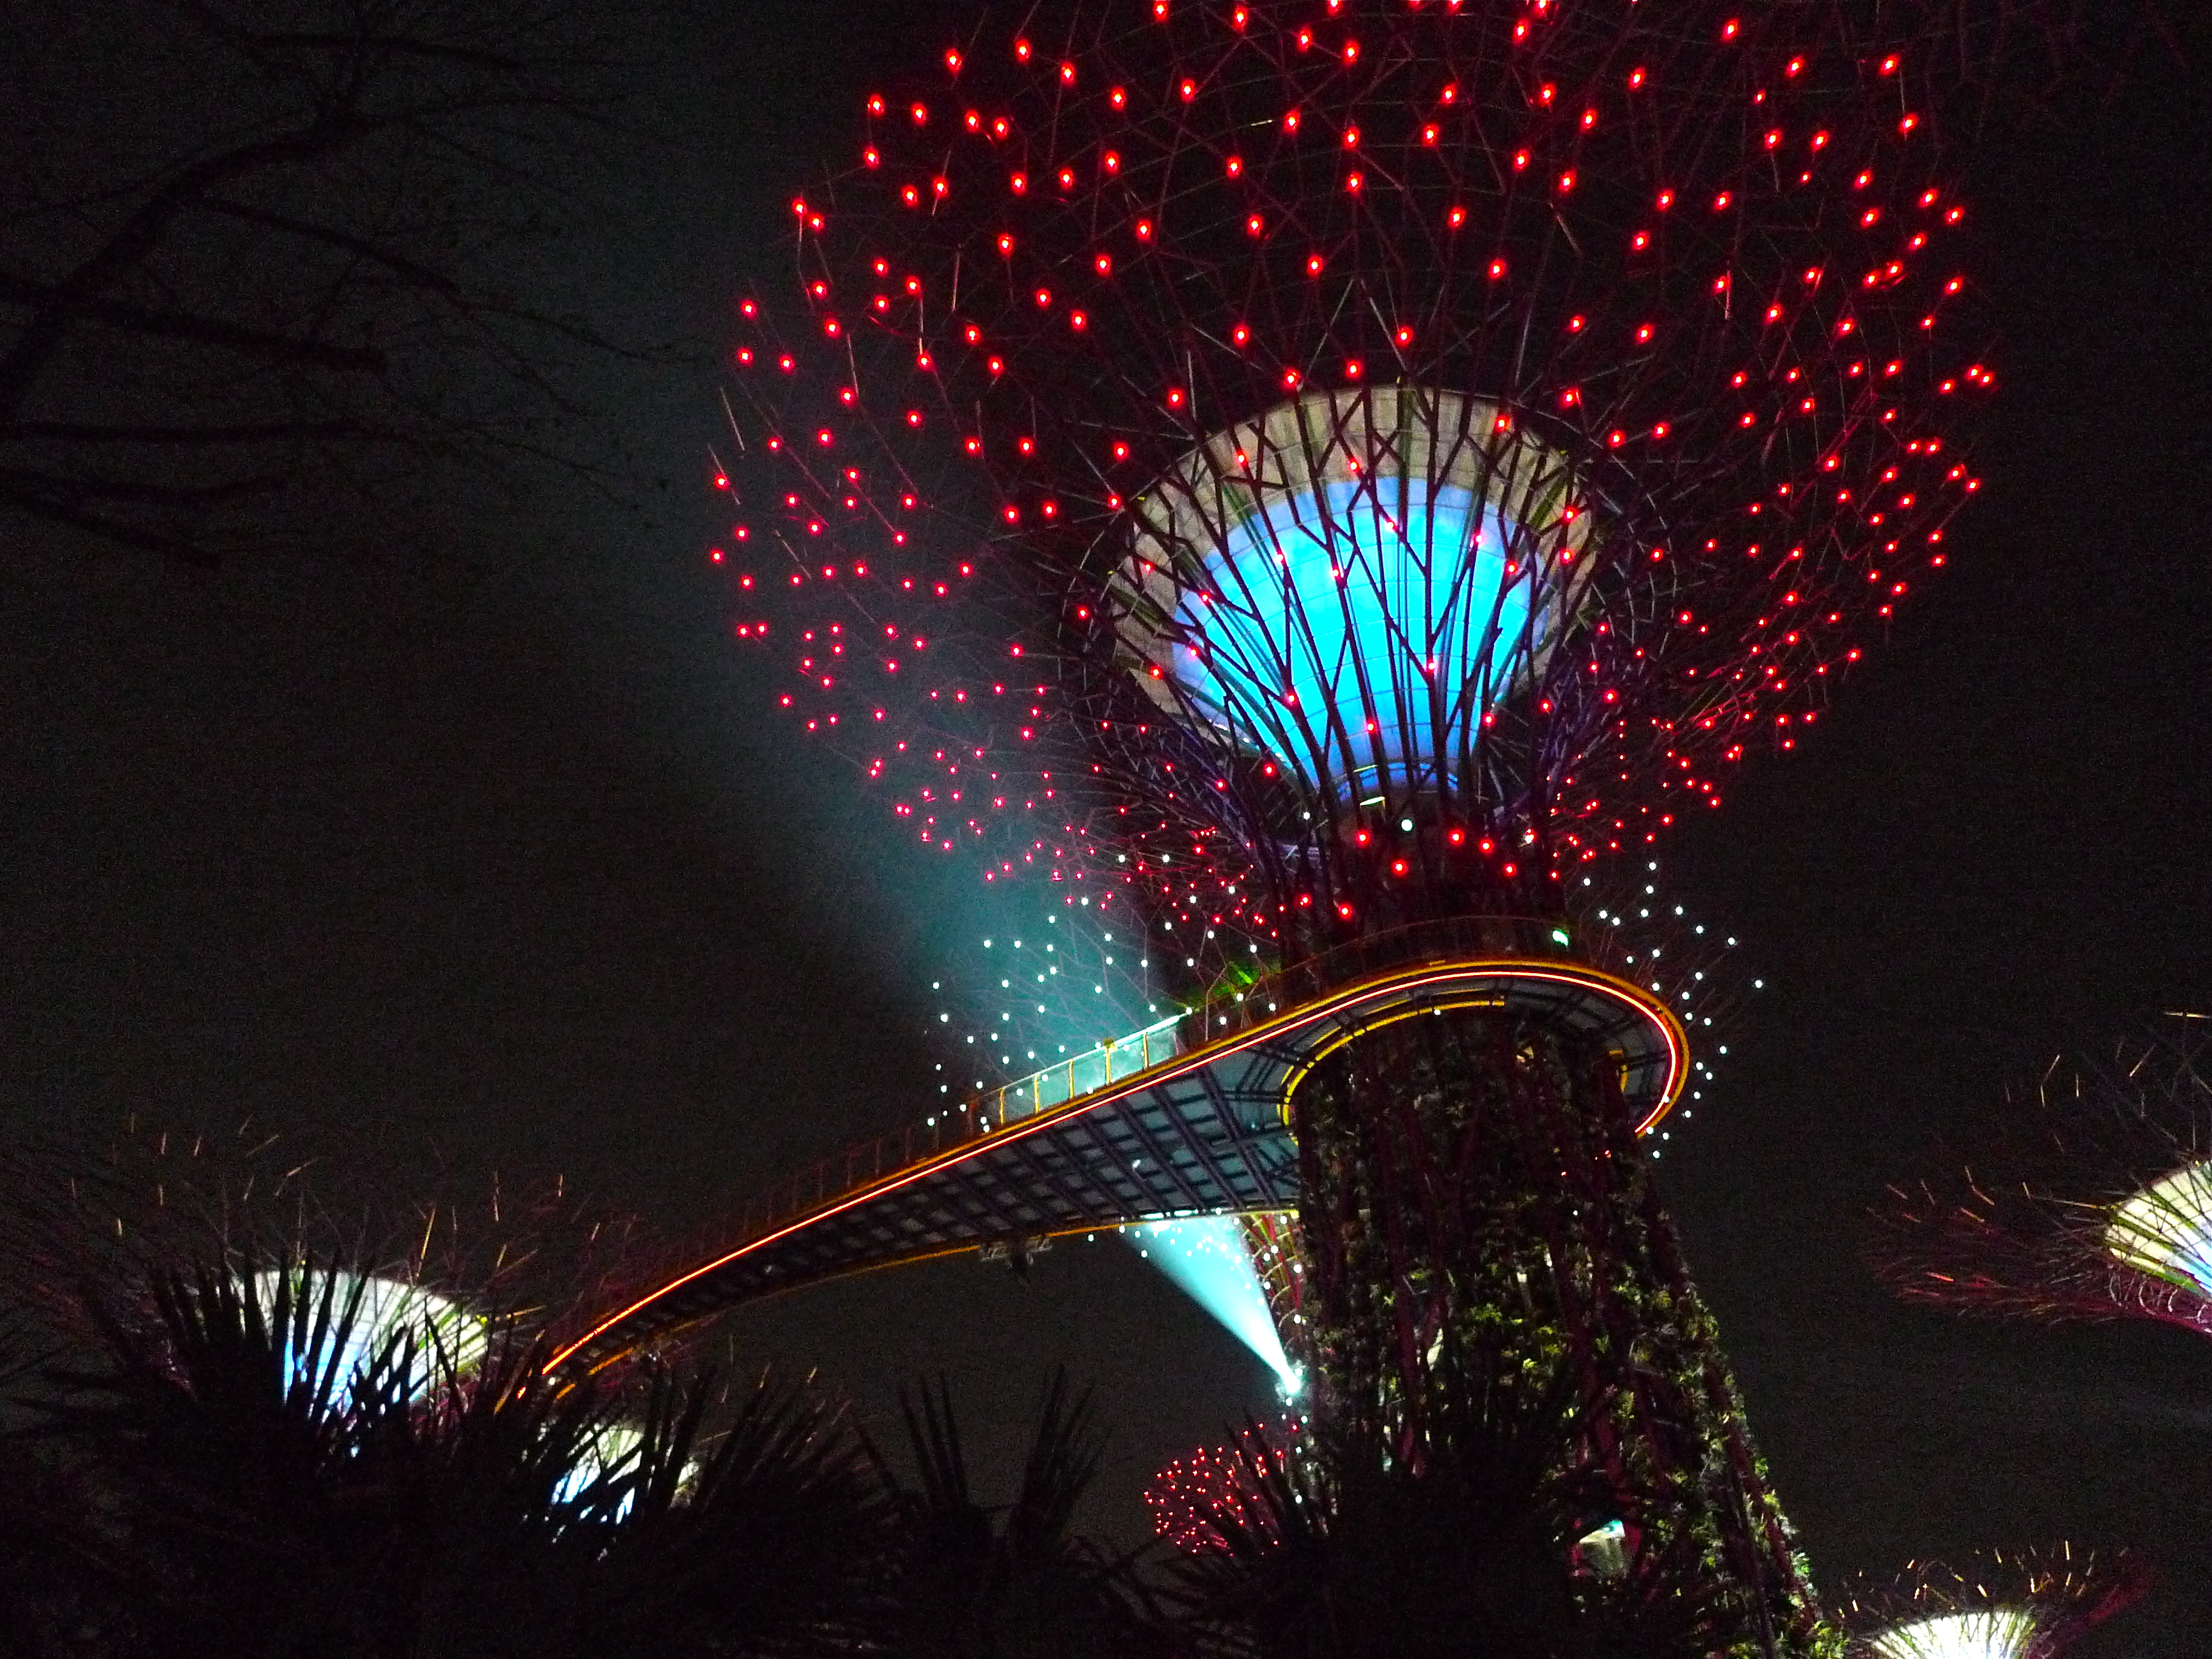 File:Supertree Grove, Gardens By The Bay, Singapore   20120630 03.